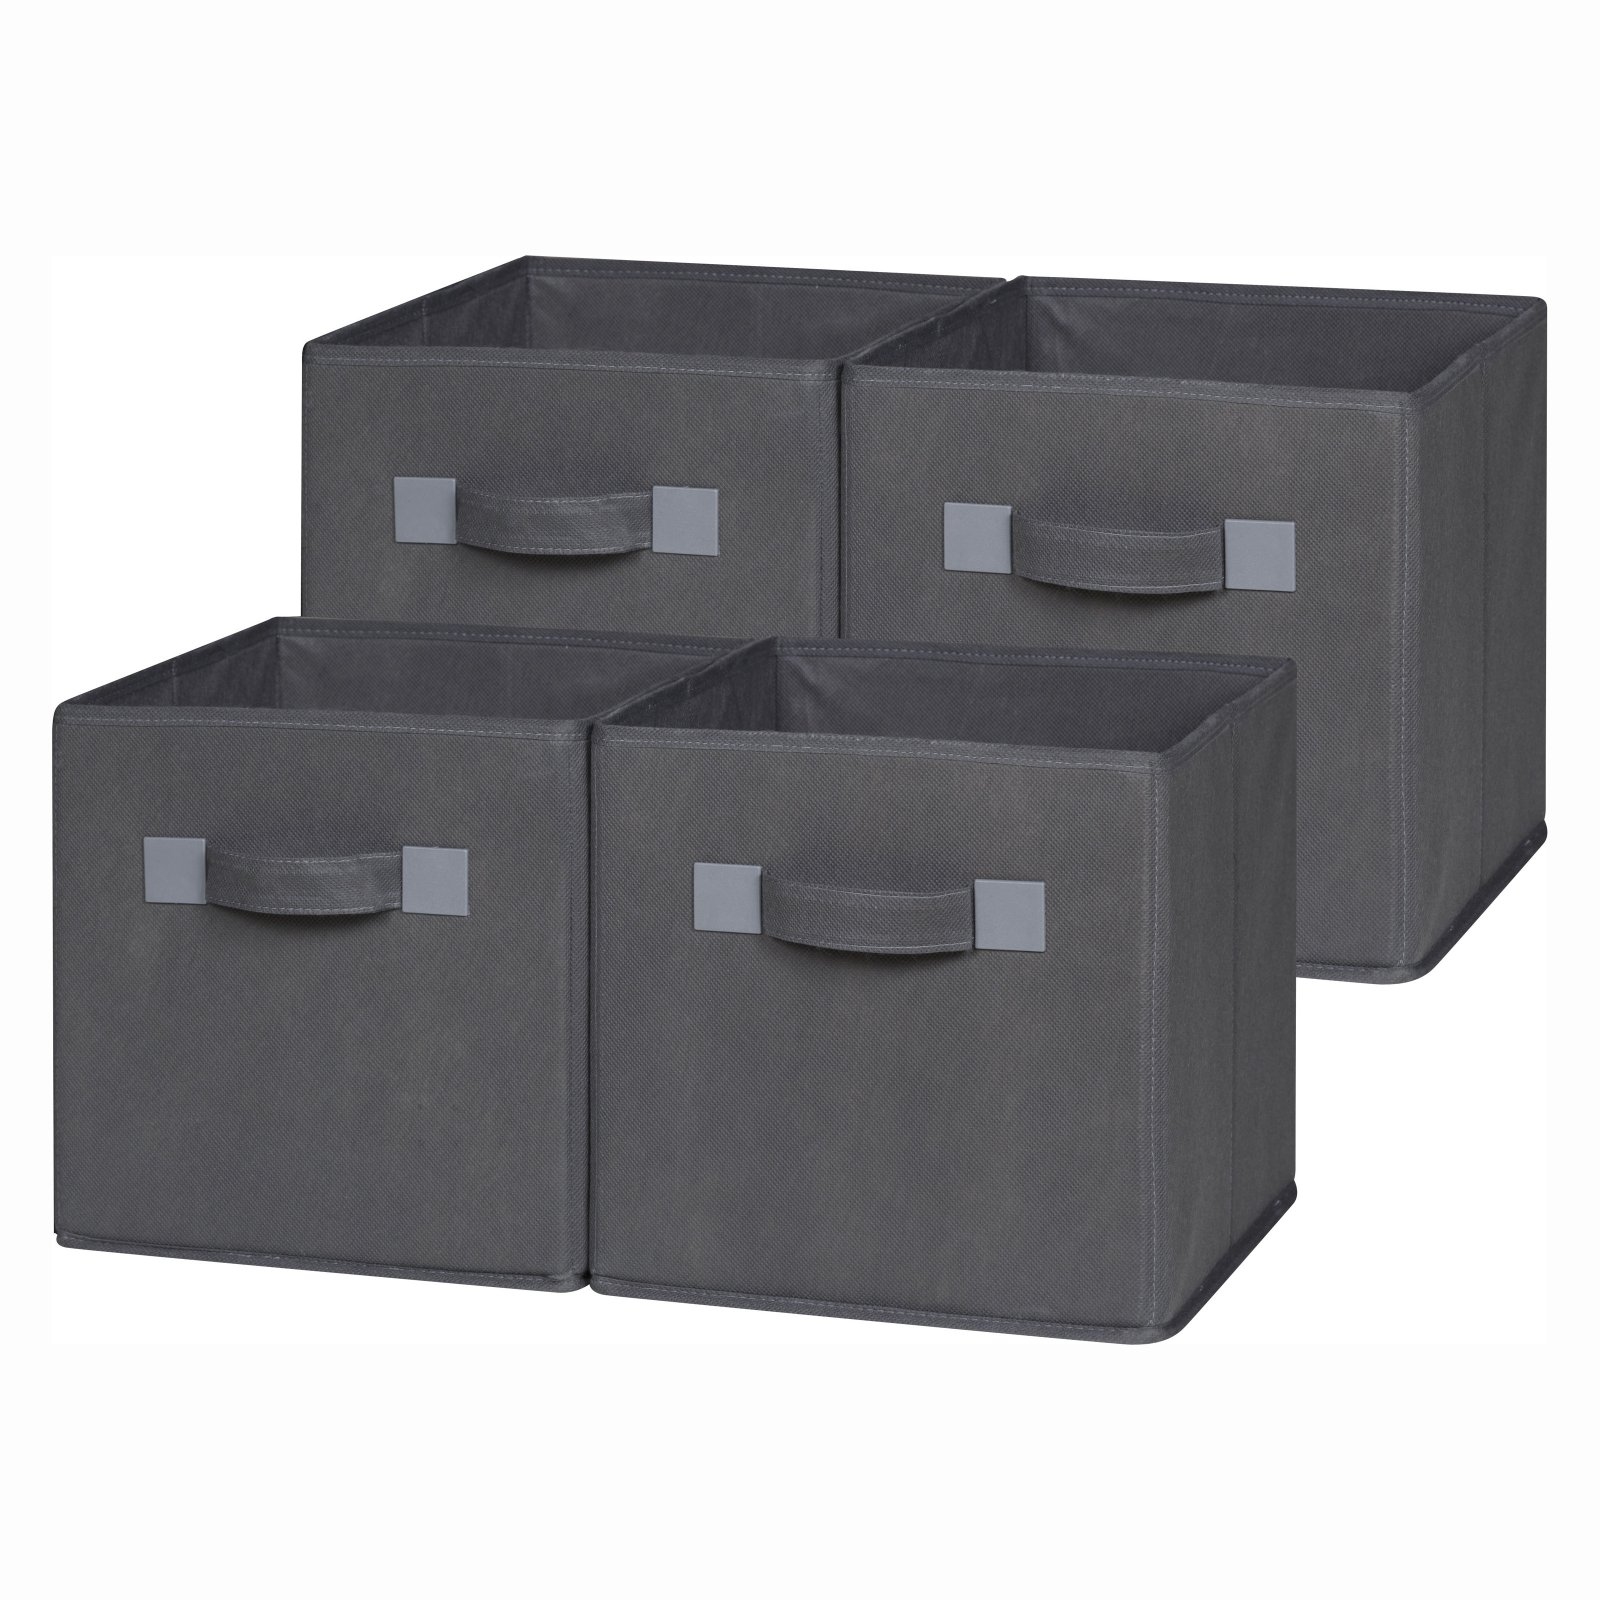 Product Image Comfort Products Storage Cube Basket Bin, 4pk, Multiple Colors